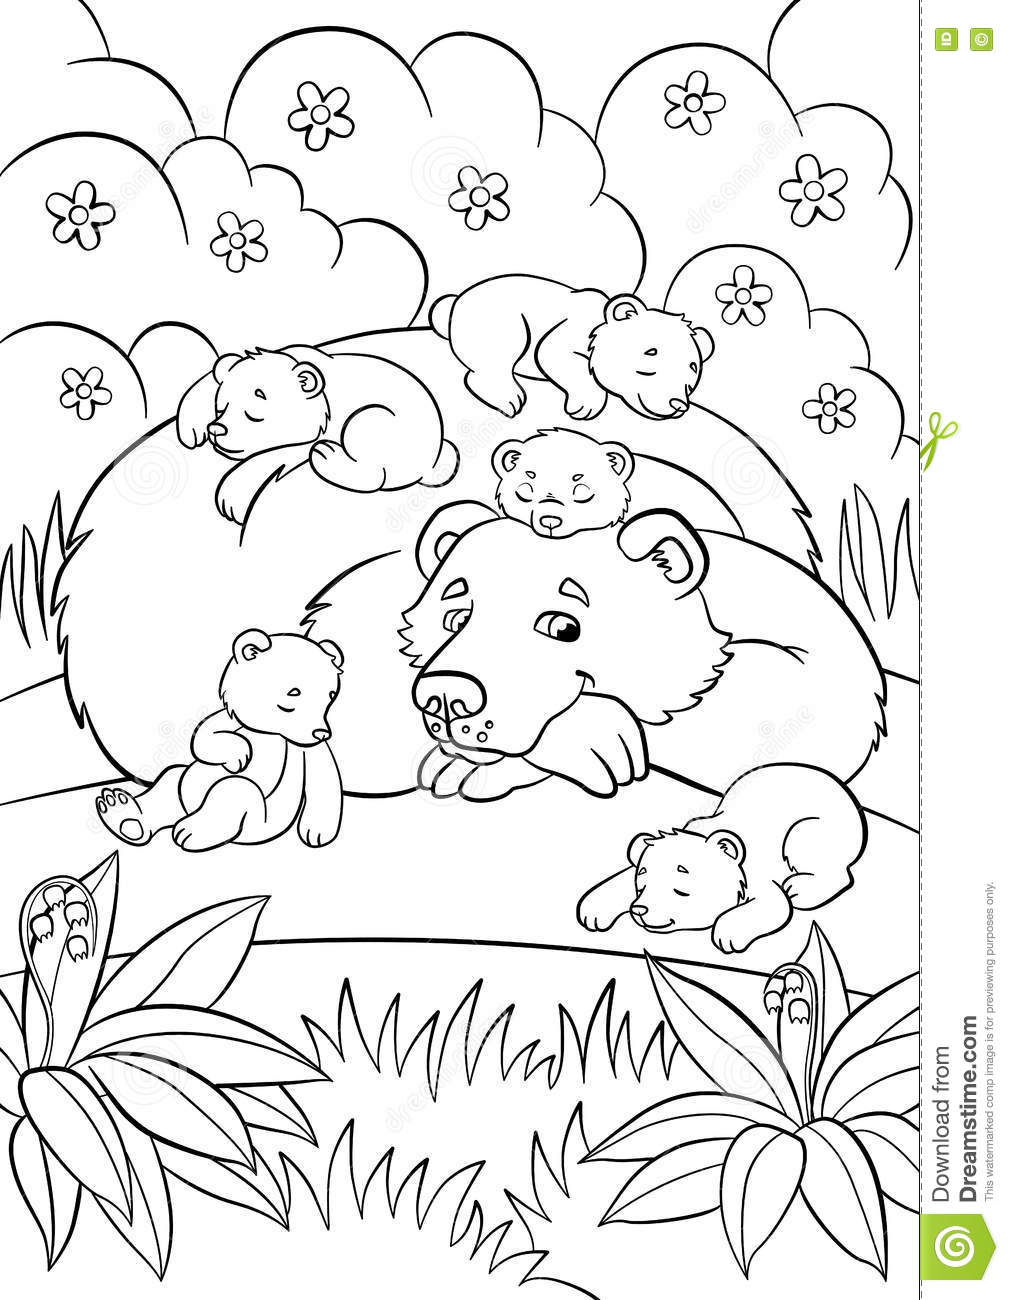 Bab cartoons illustrations vector stock images 31 Crazy animals coloring book